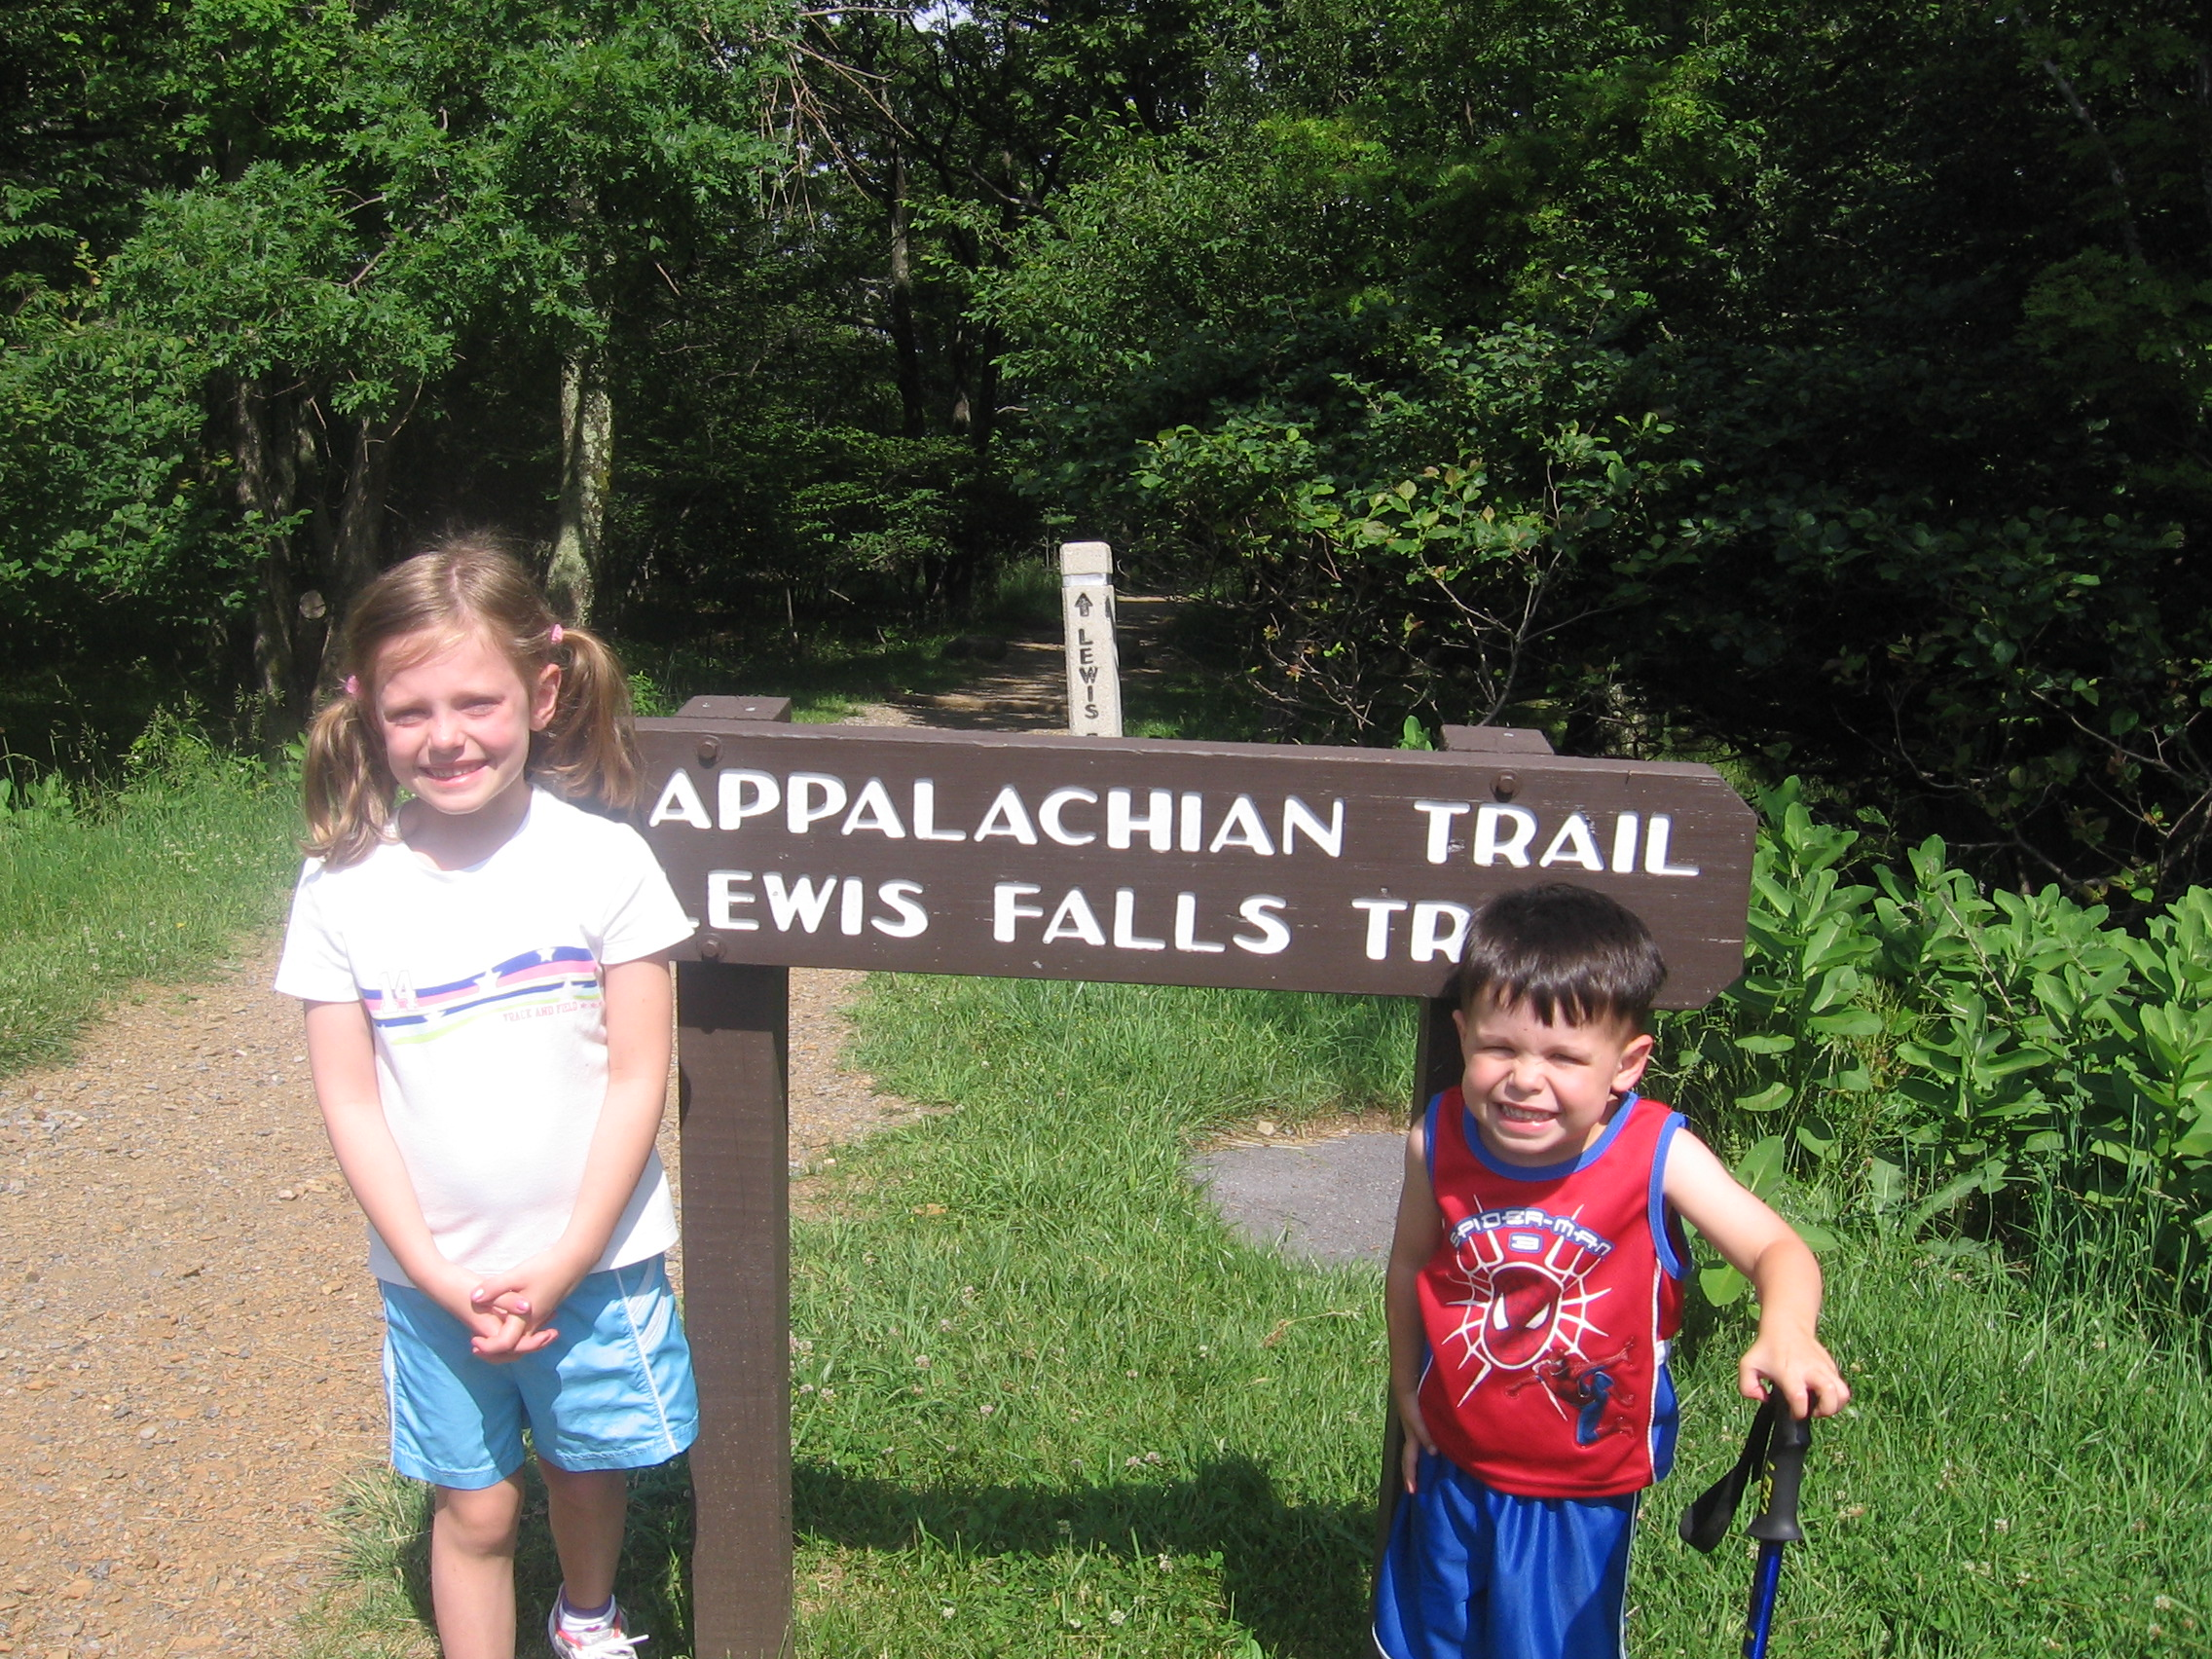 Madison & William on the Appalachian Trail